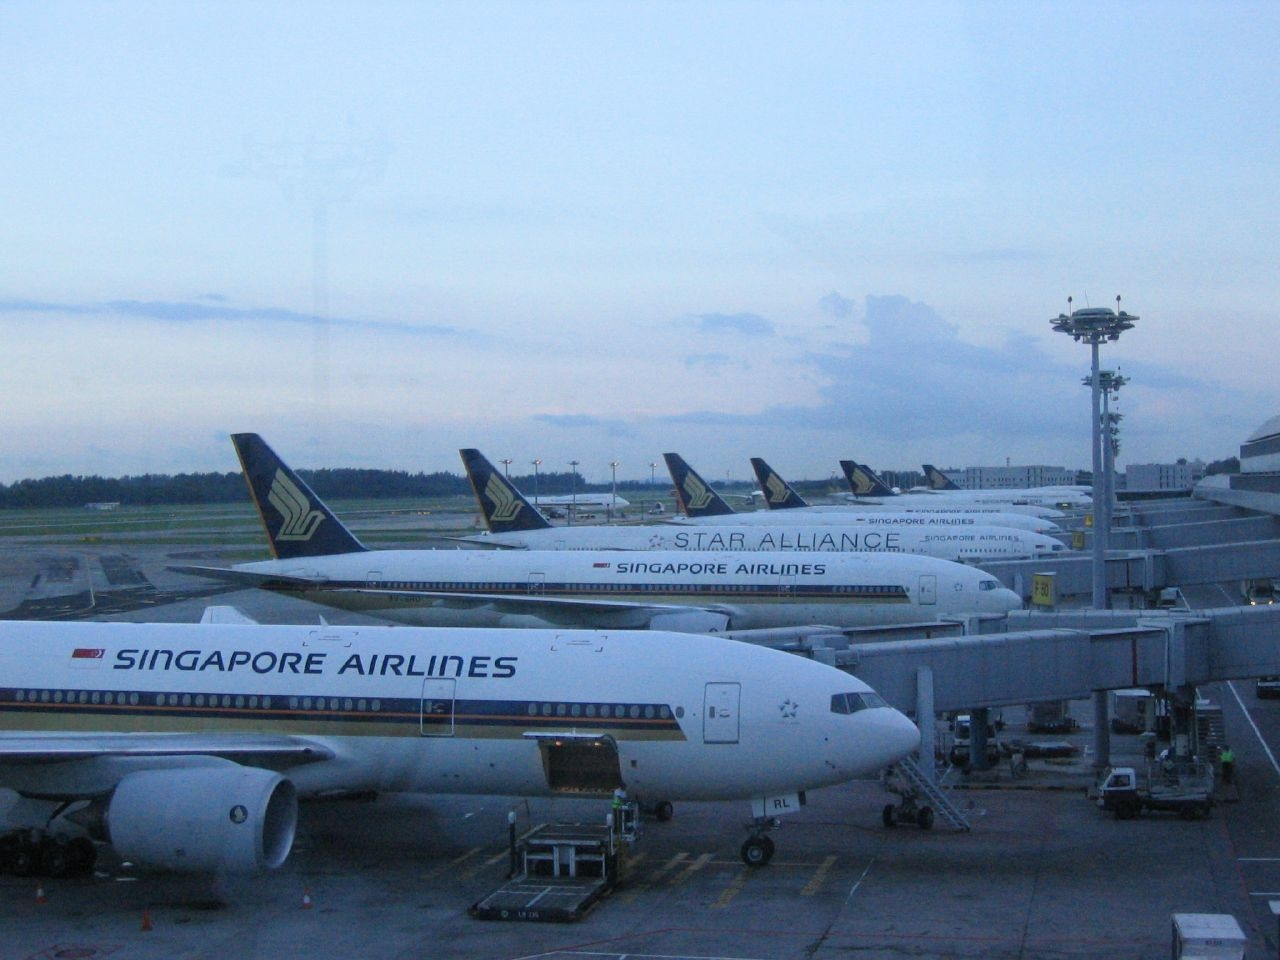 singapore airline essay Singapore airlines being in the airline and service centric industry, this put the company to face a variety of challenges, ranging from the basic characteristics of service to the increasing number of competitors entering the industry.